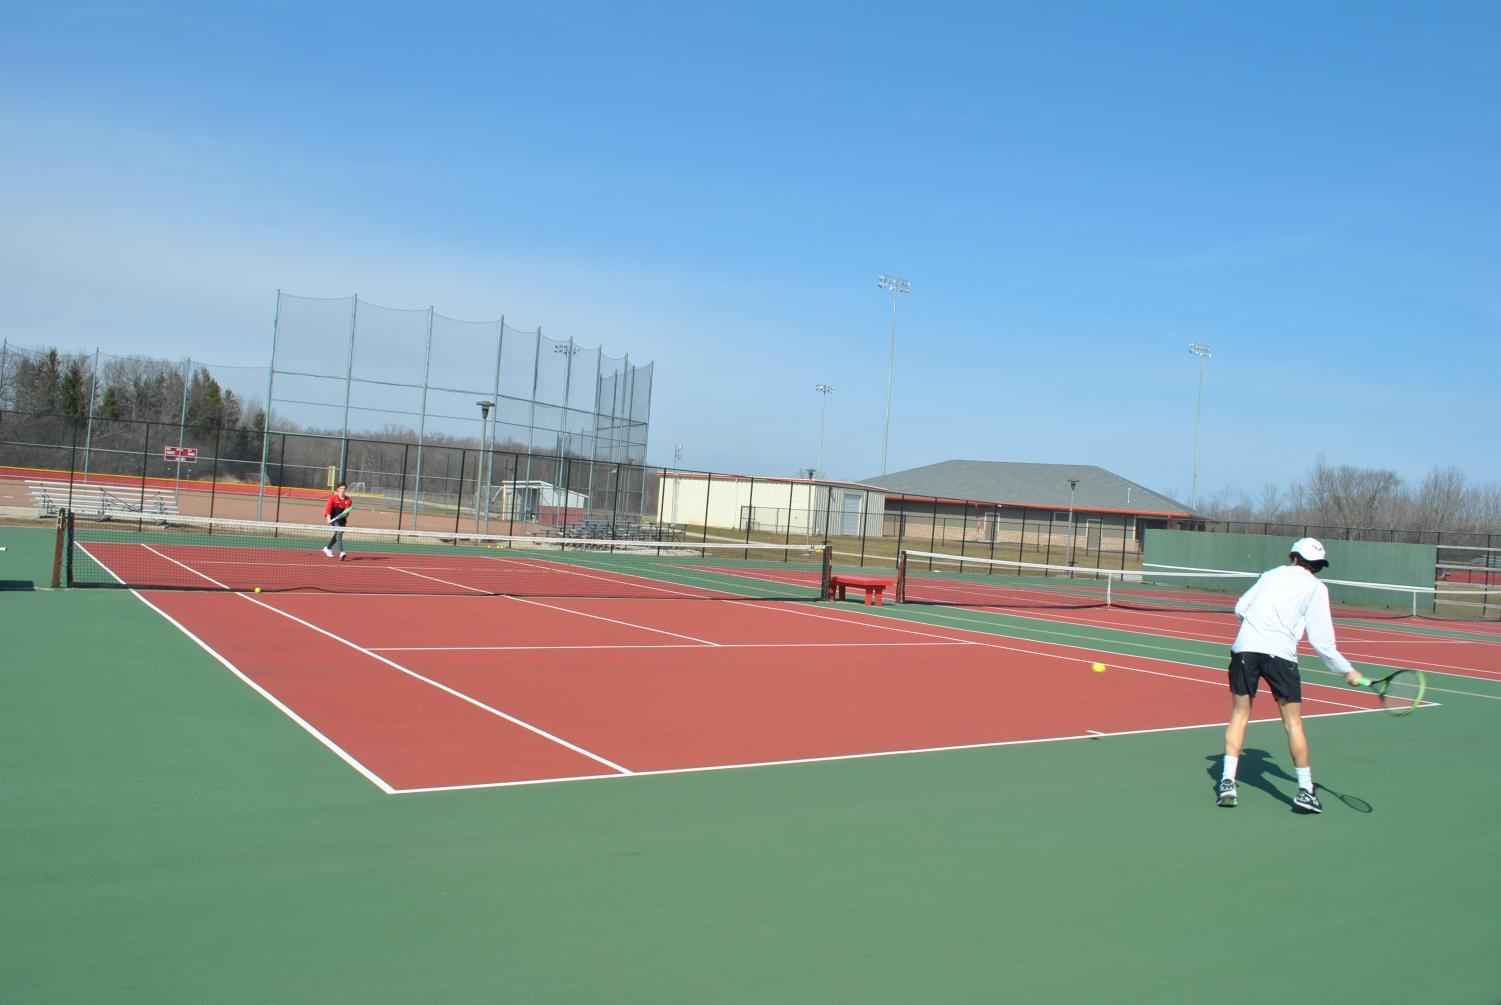 Zach Sprinkmann (left), sophomore, and Eli Eiseman (right), senior, warm up before the final day of tryouts.